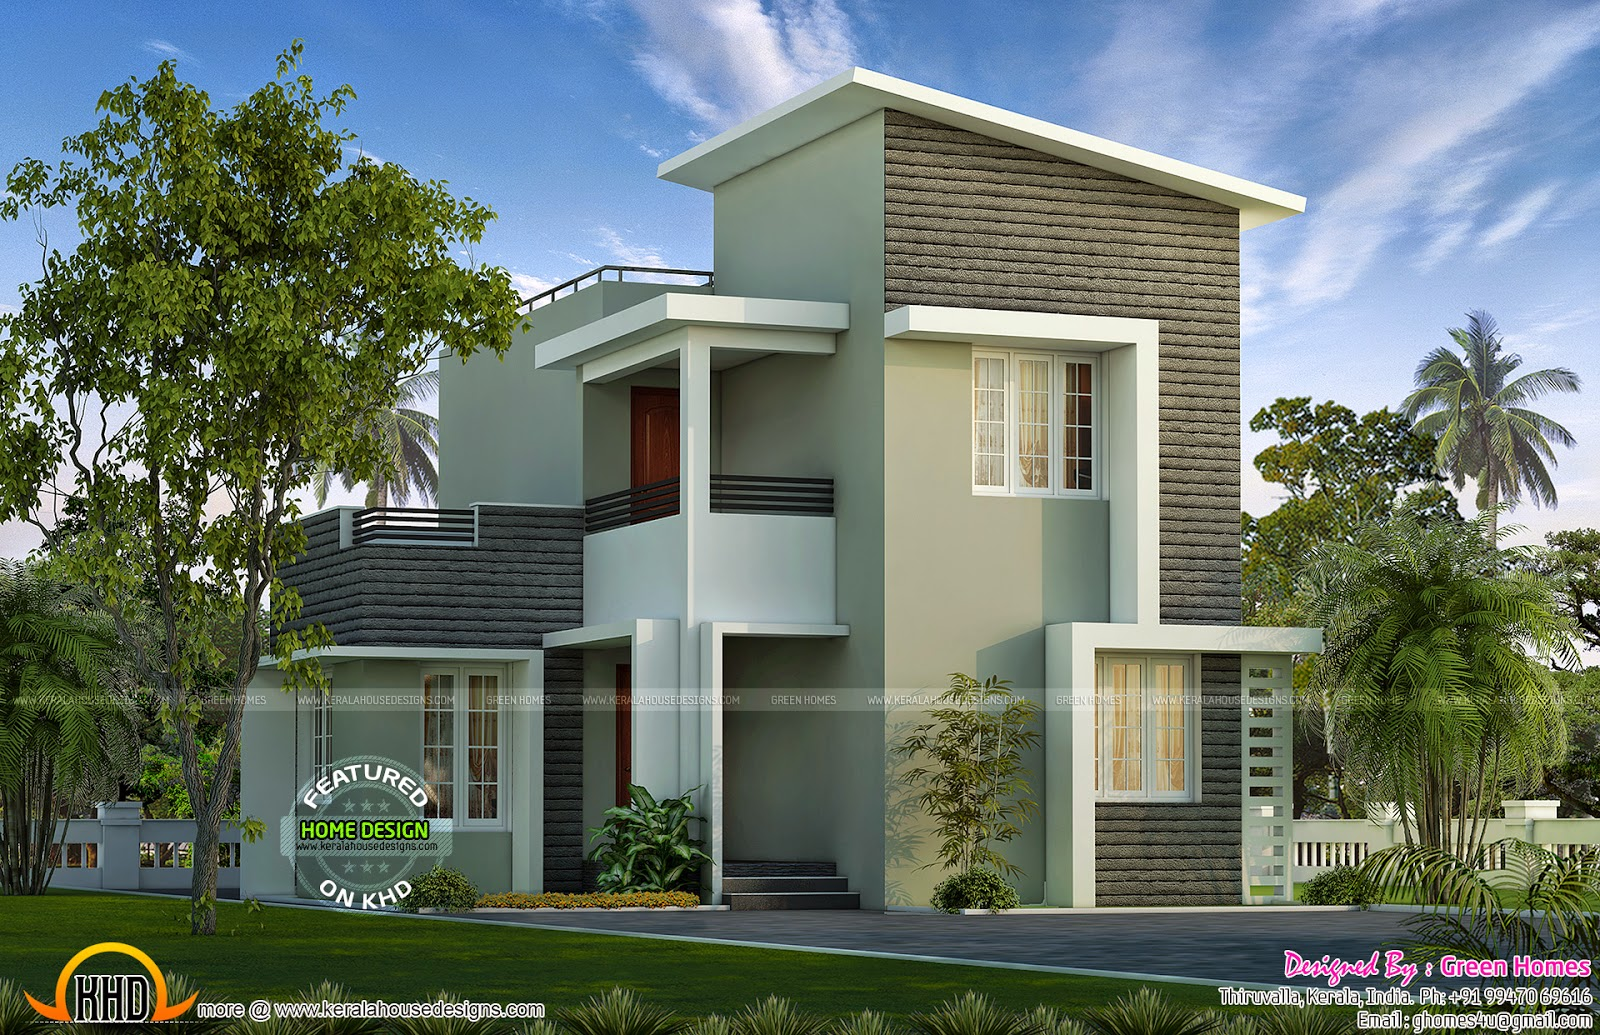 April 2015 Kerala home design and floor plans - THOUGHTSKOTO